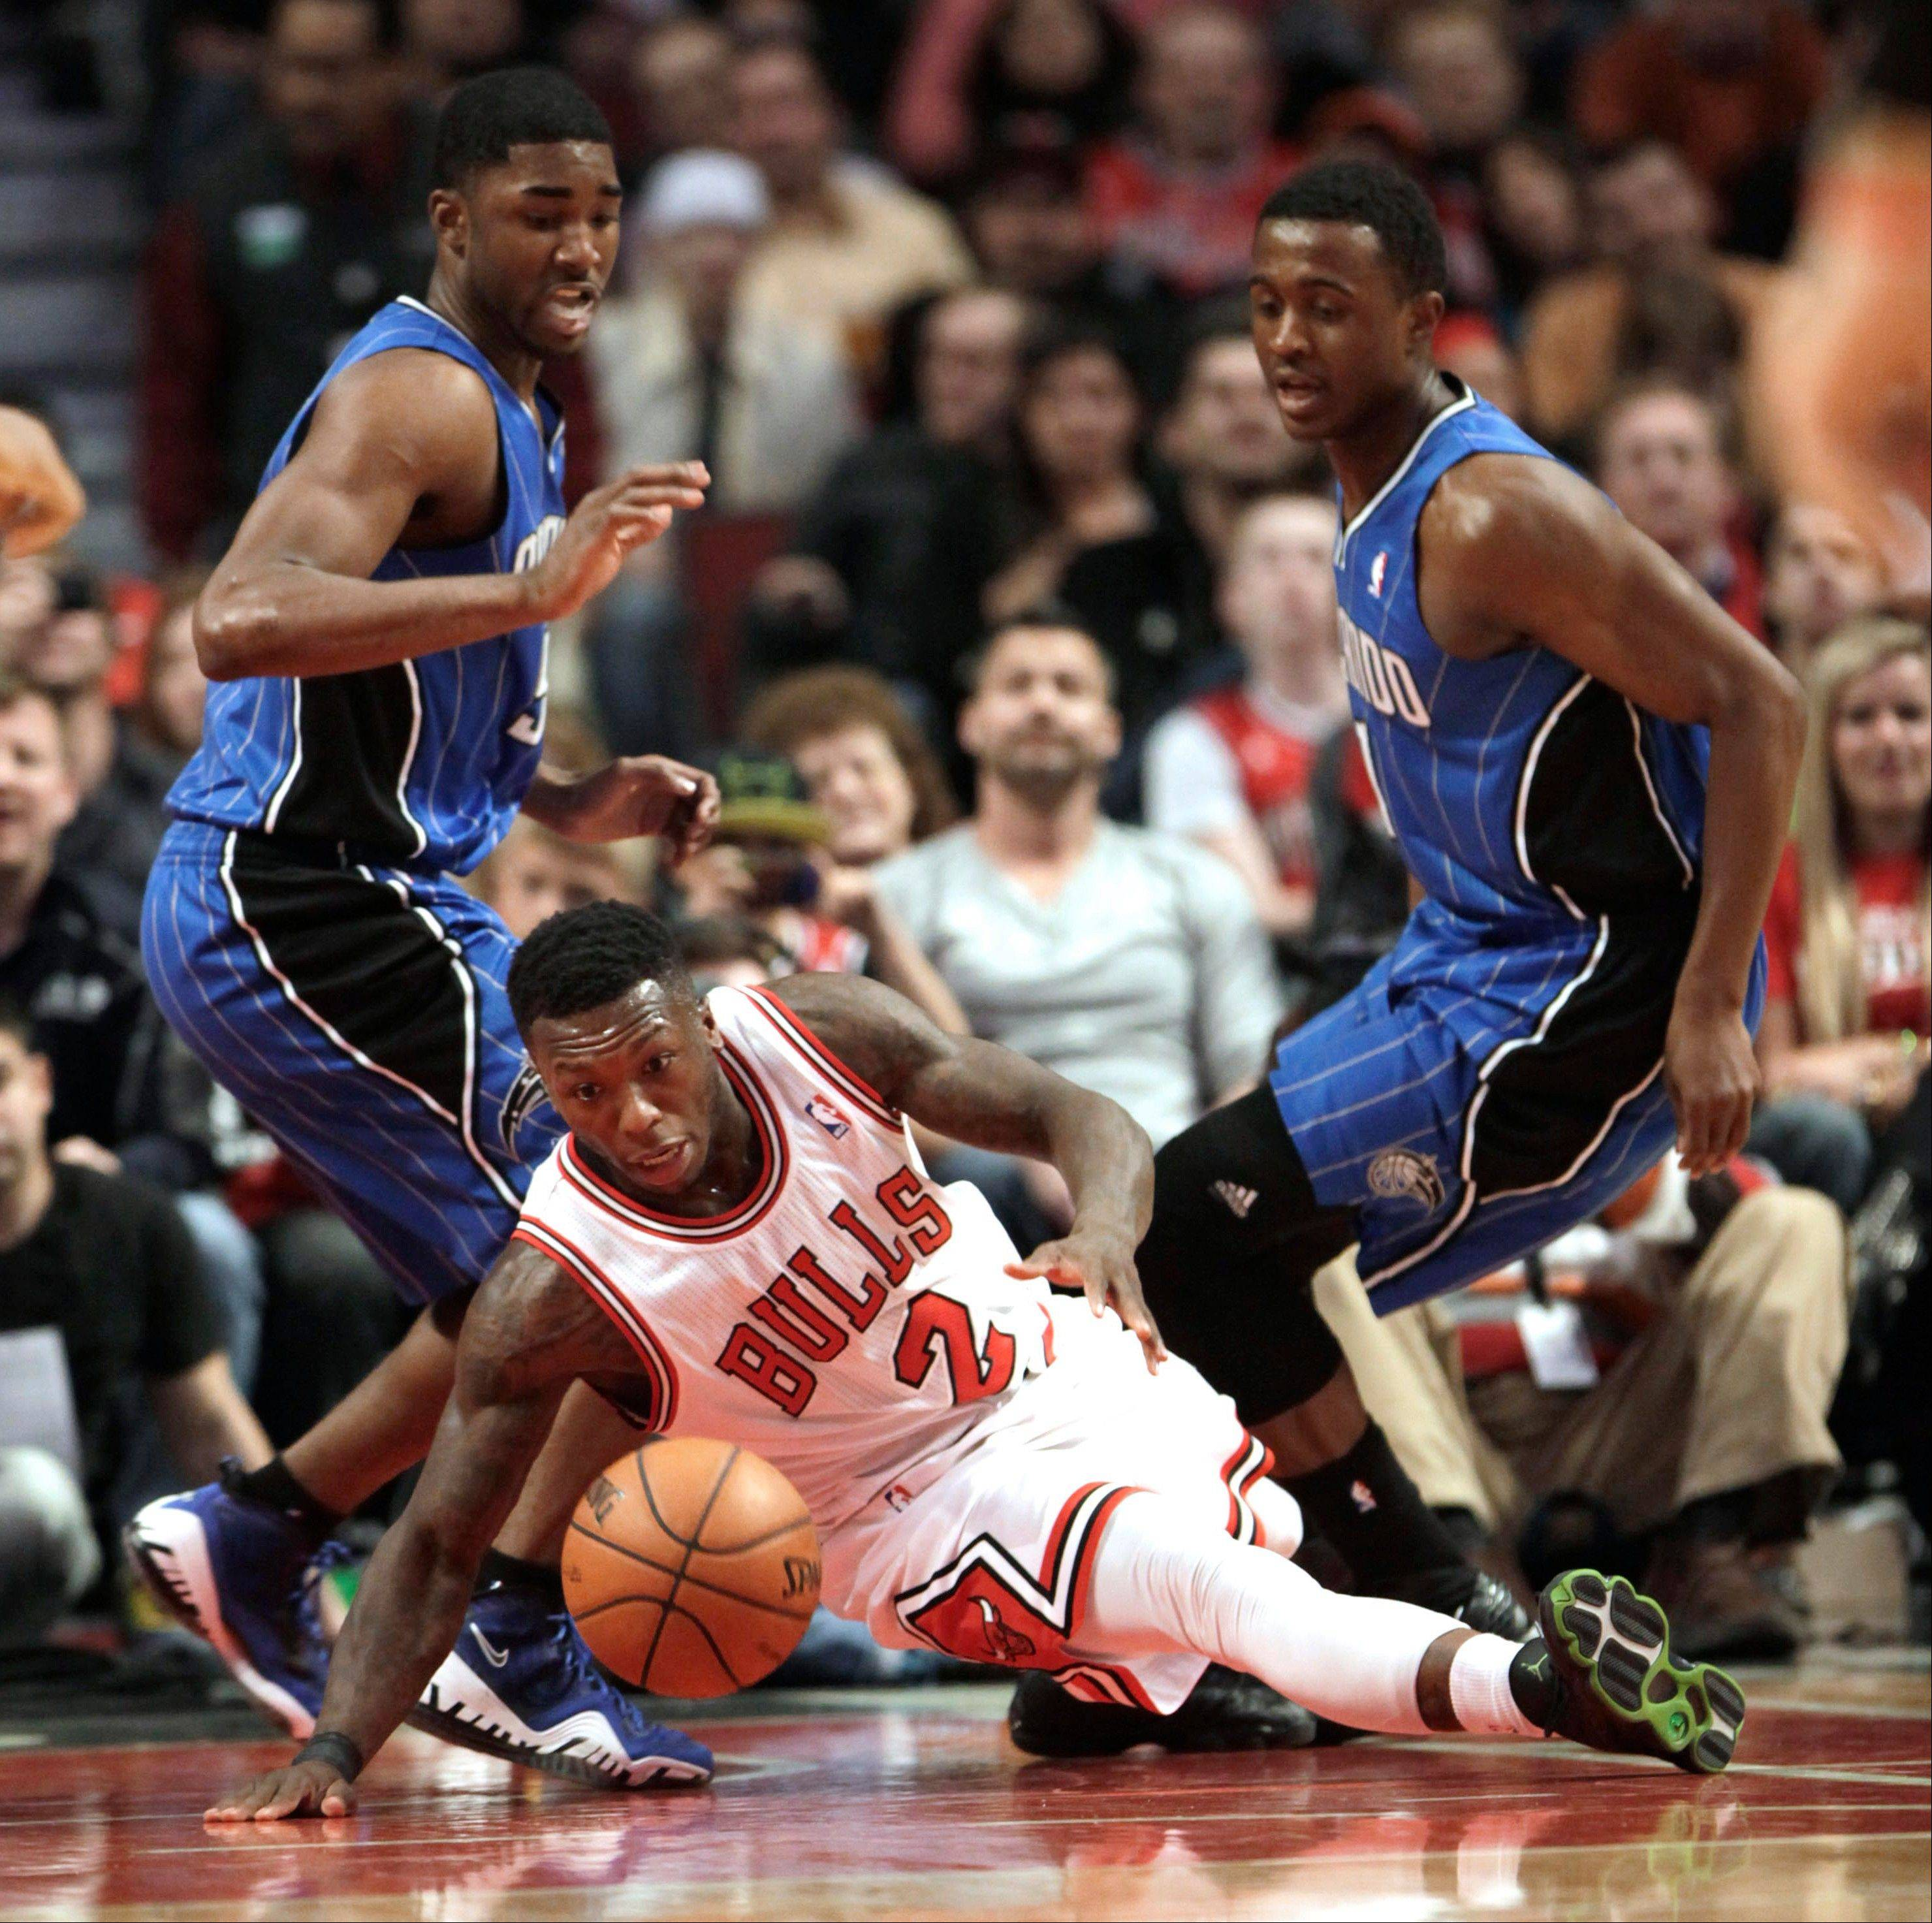 Nate Robinson has hit some big shots lately for the Bulls. �I�m not afraid to fail,� Robinson said. �You�re going to have to fail a lot to succeed in this game. For me, you can�t be afraid to take that shot. You can�t be afraid to miss it or make it.�